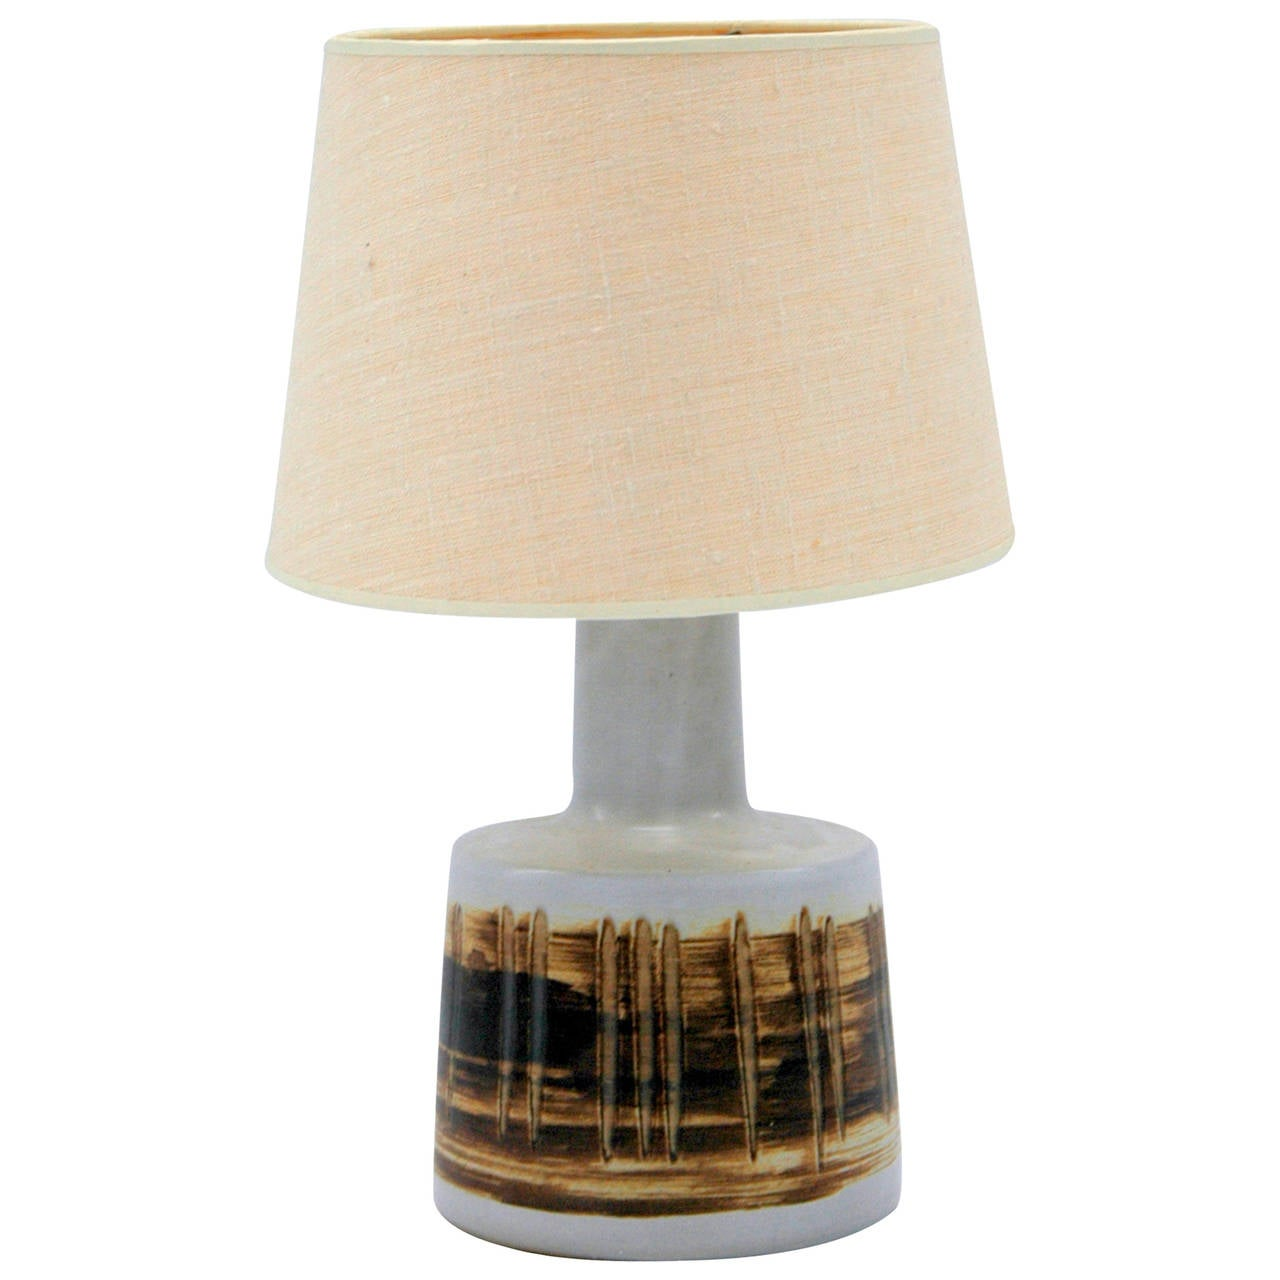 Table Lamp by Martz for Marshall Studio